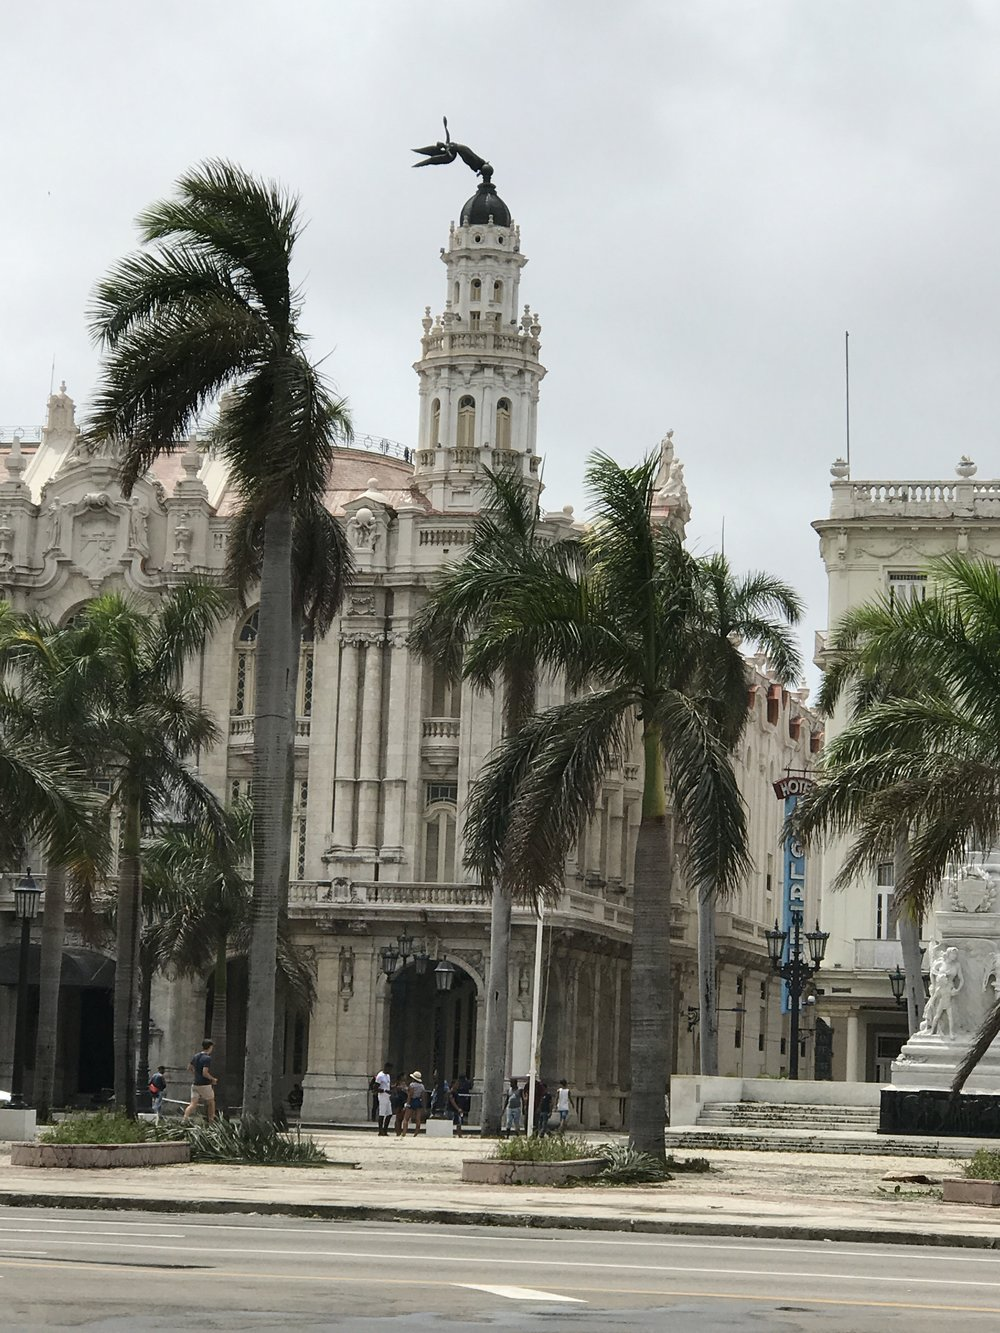 One of the four statues atop the Gran Teatro de Havana knocked horizontal from the storm. The others were all still vertical. Later the day, a crew was out taking down the bent over statue. There was an enormous crowd of people out watching and taking pictures of the process.